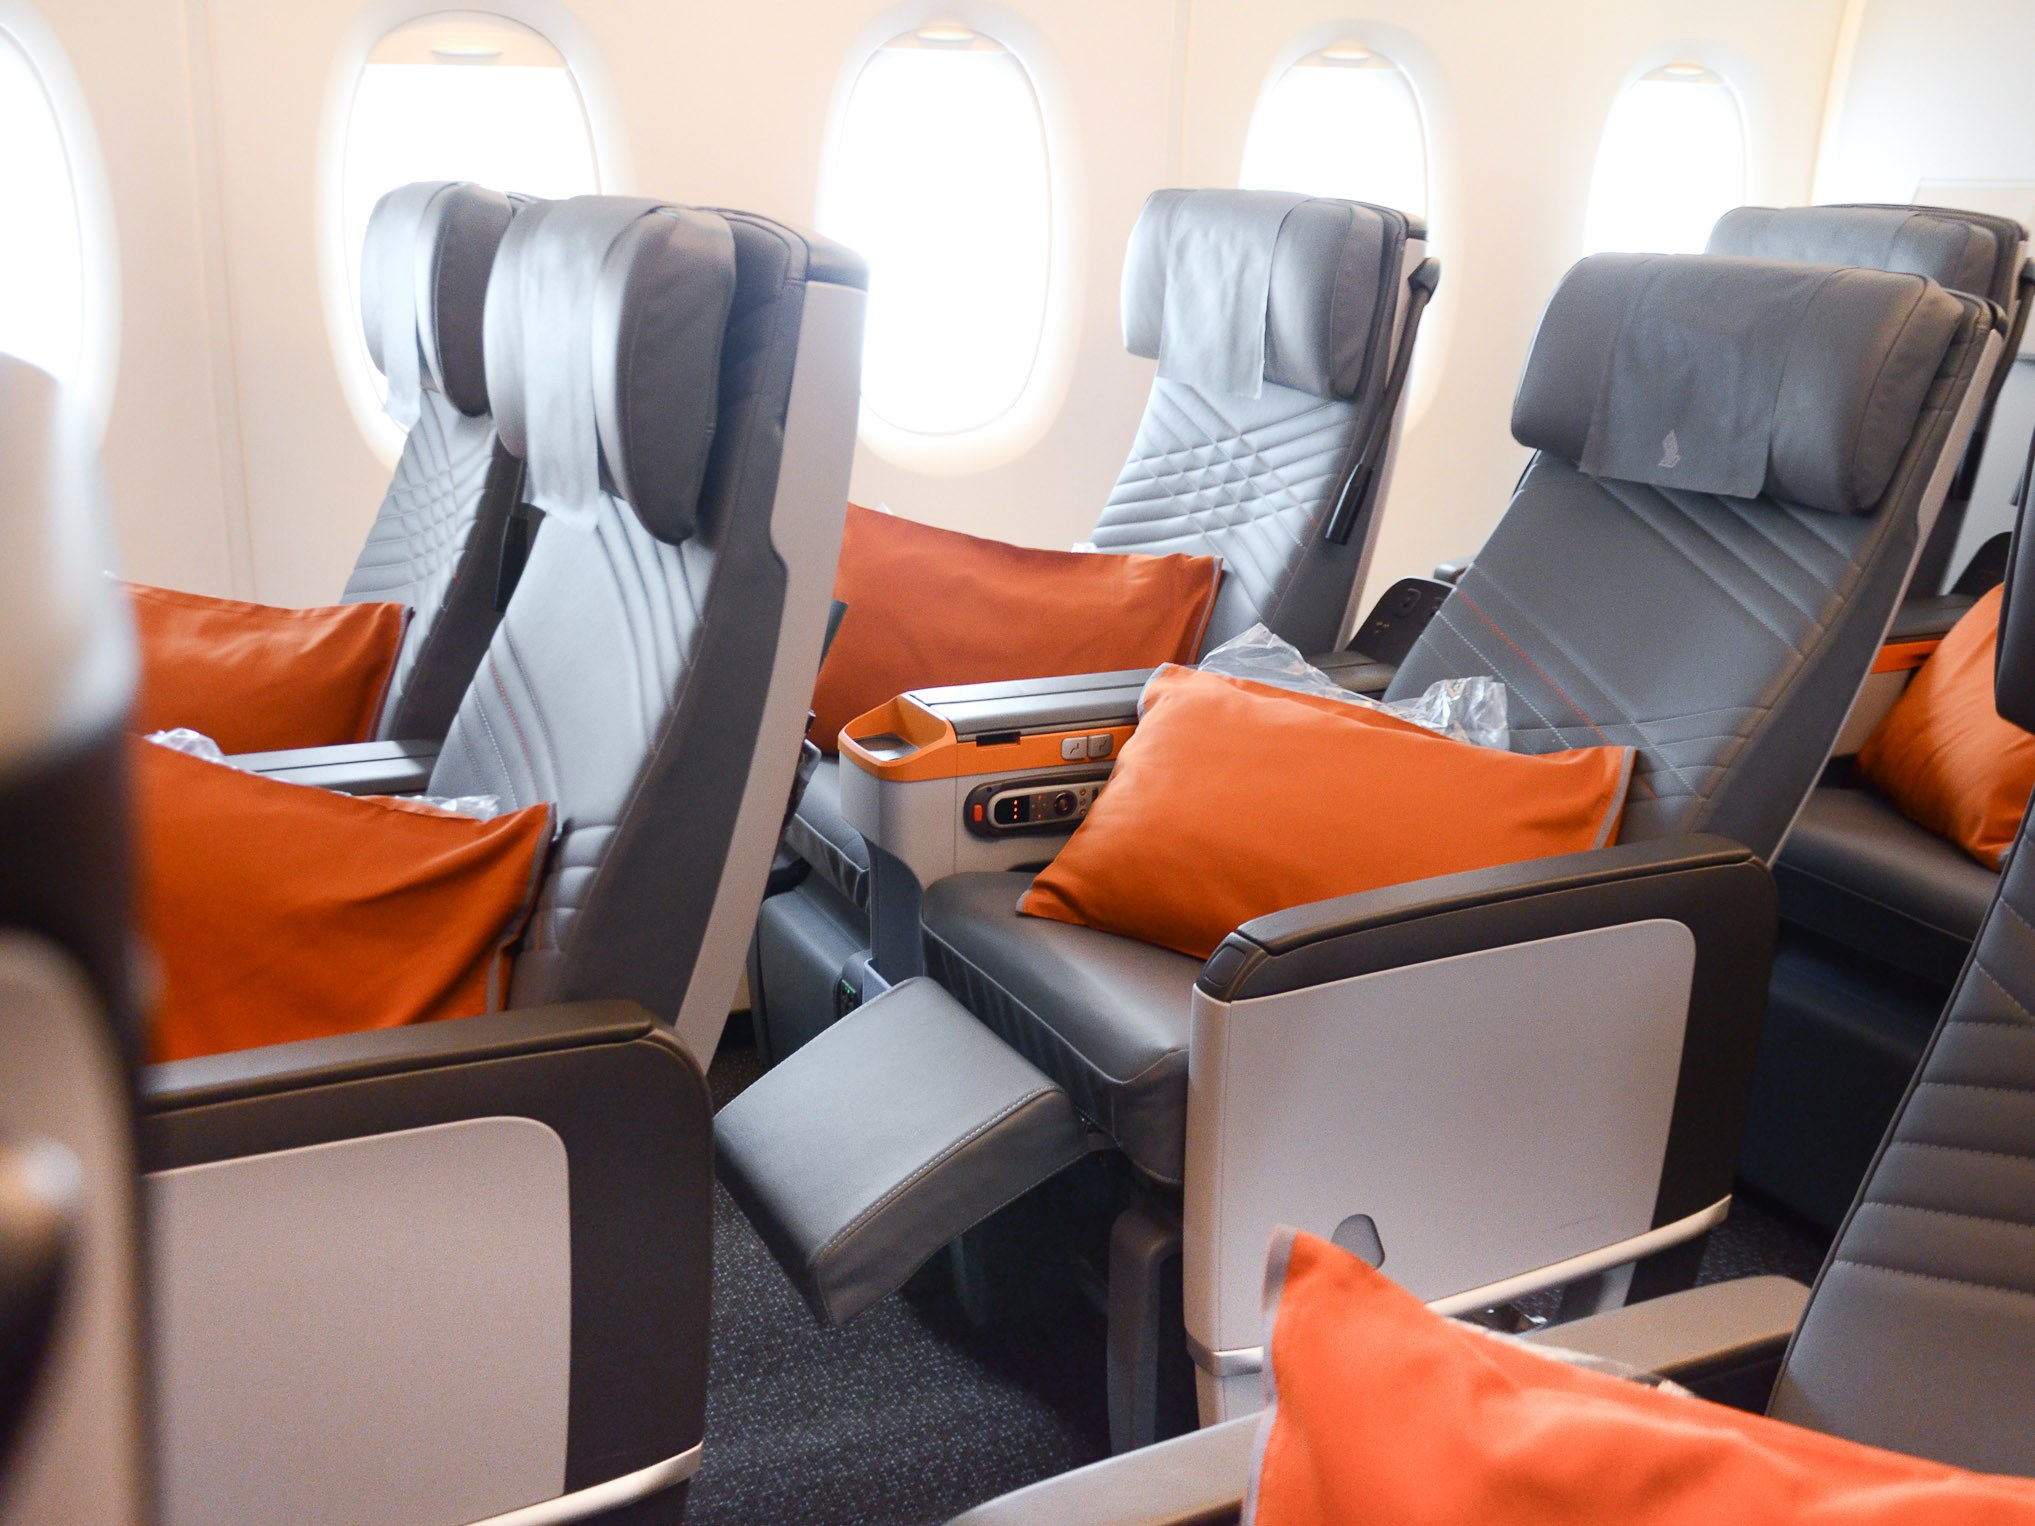 4 Airlines With The Most Leg Space In Premium Economy